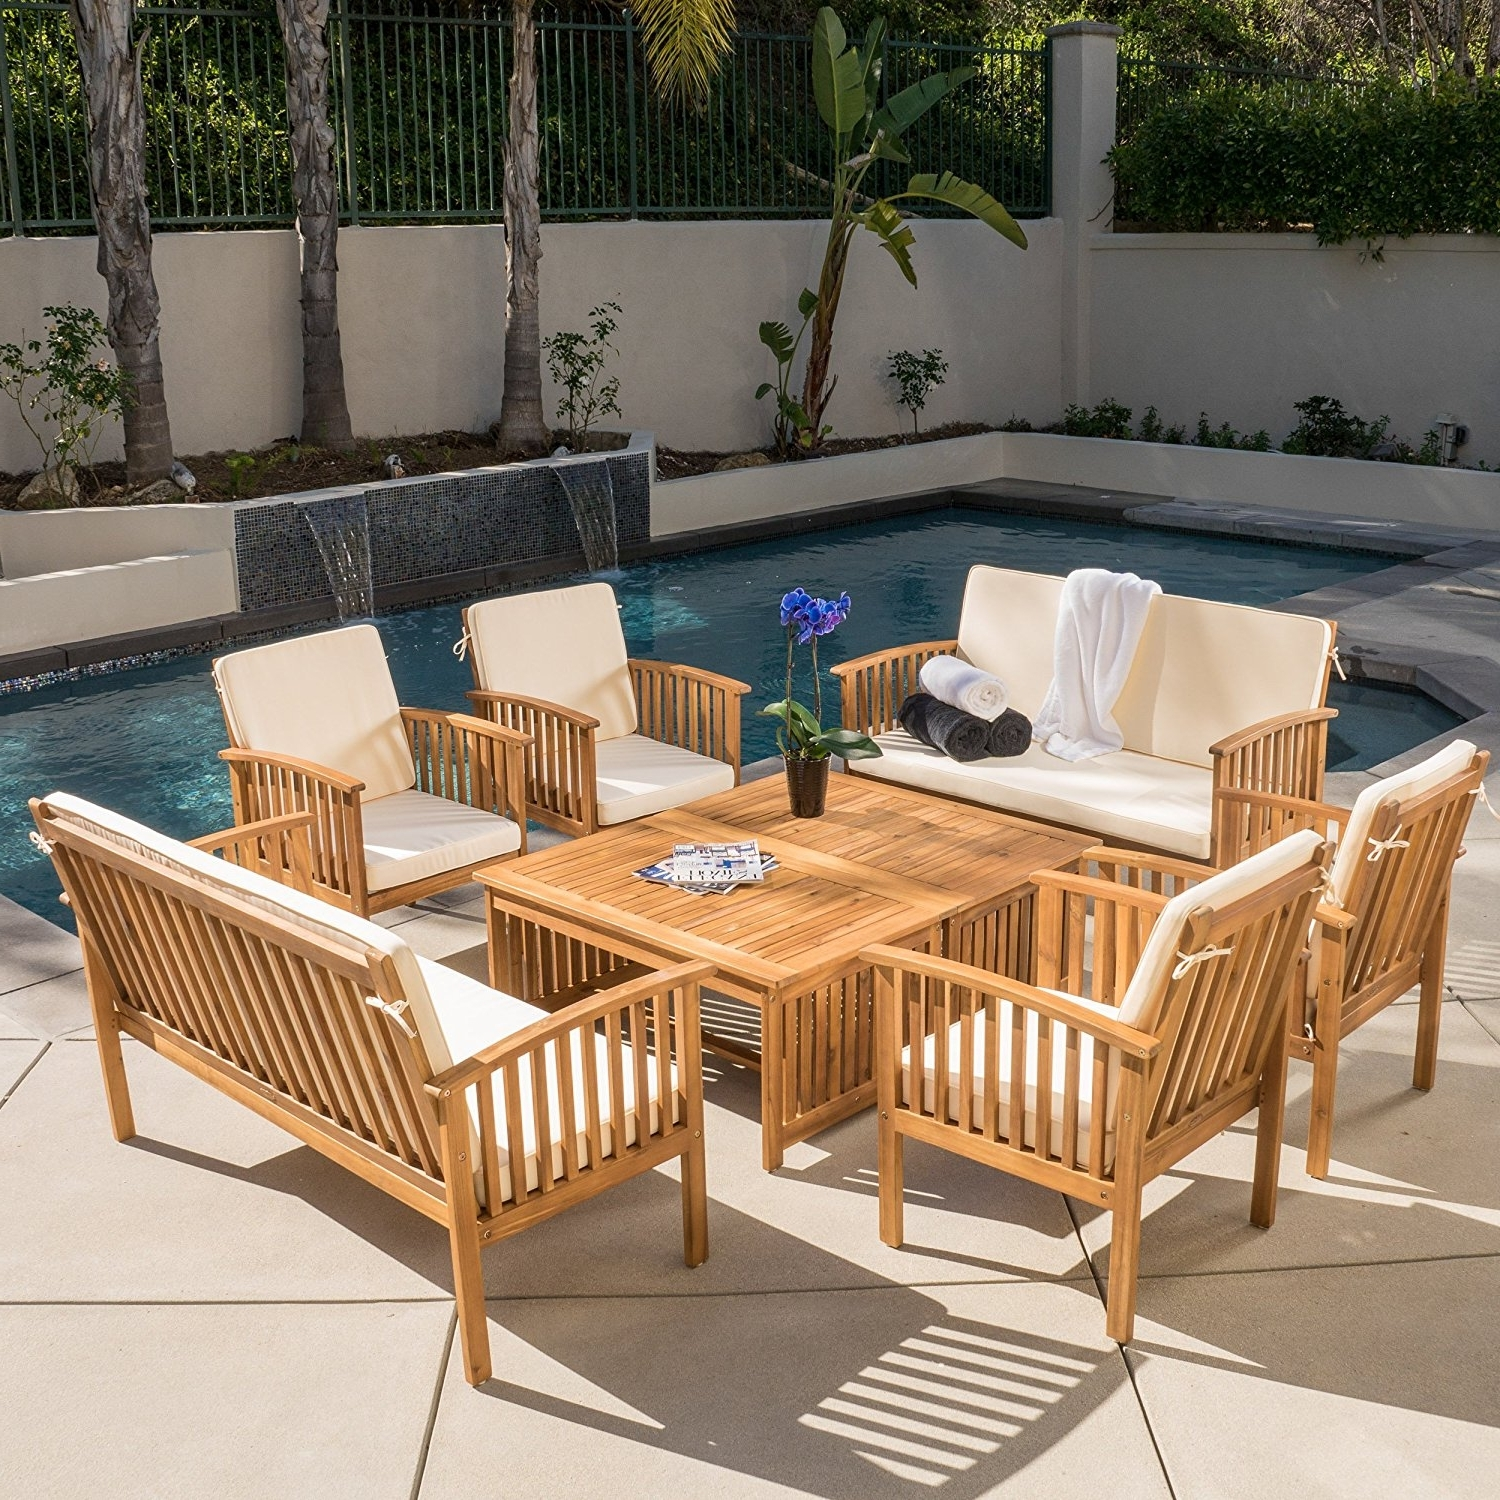 Preferred Amazon Patio Furniture Conversation Sets Inside Patio : Cheap Garden Furniture Popular Outdoor Furniture Near Me (View 13 of 15)